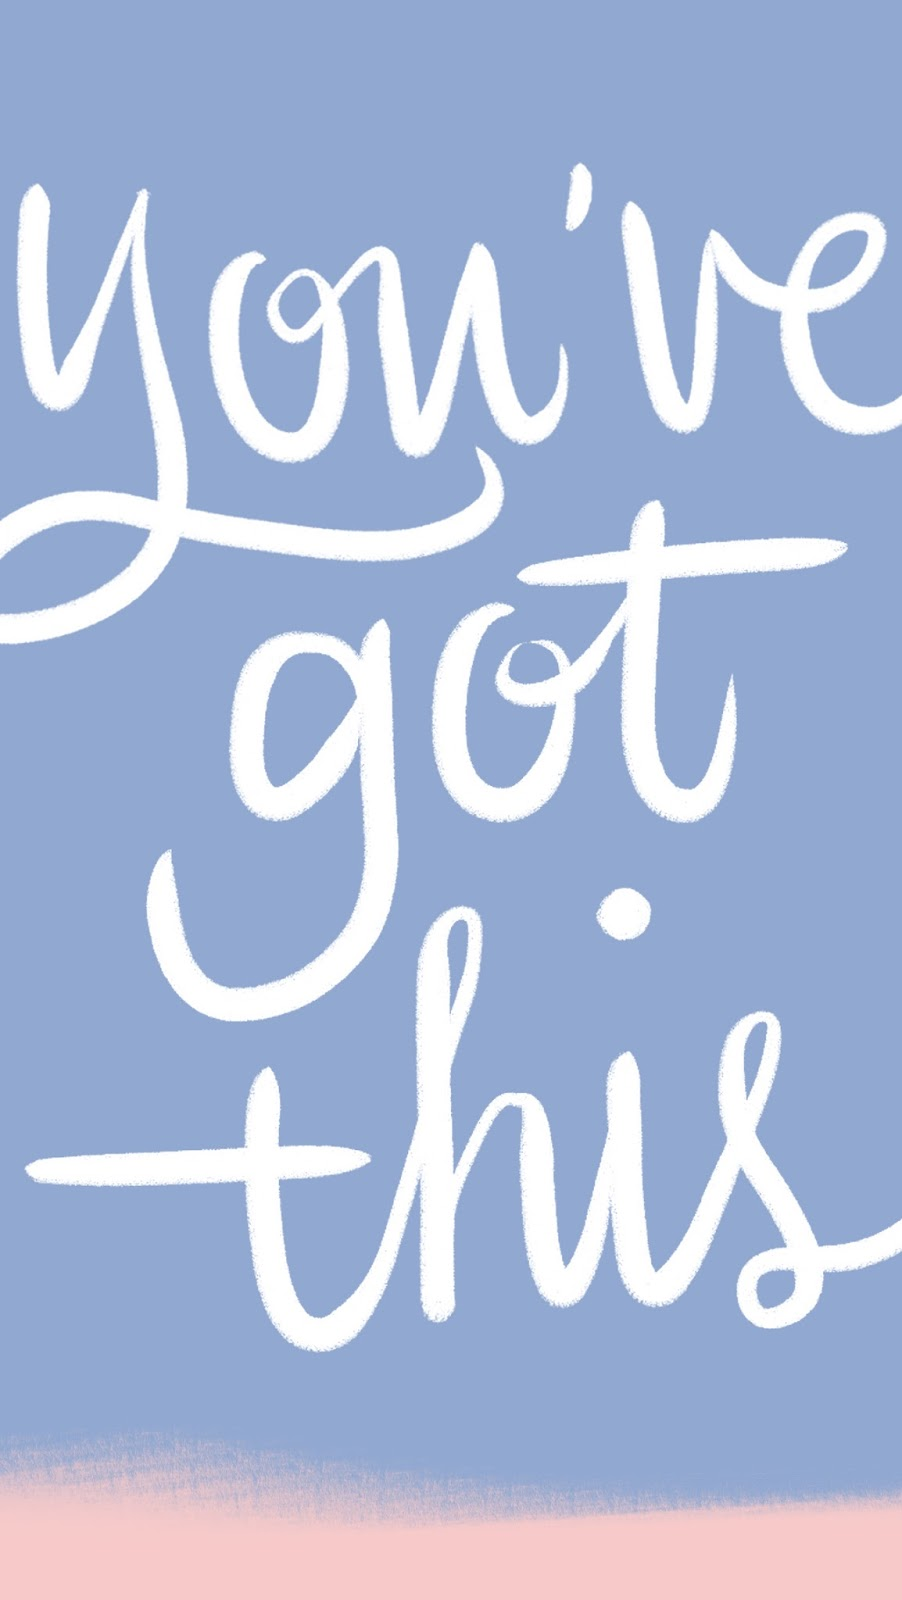 Mobile YouveGotThis wallpaper